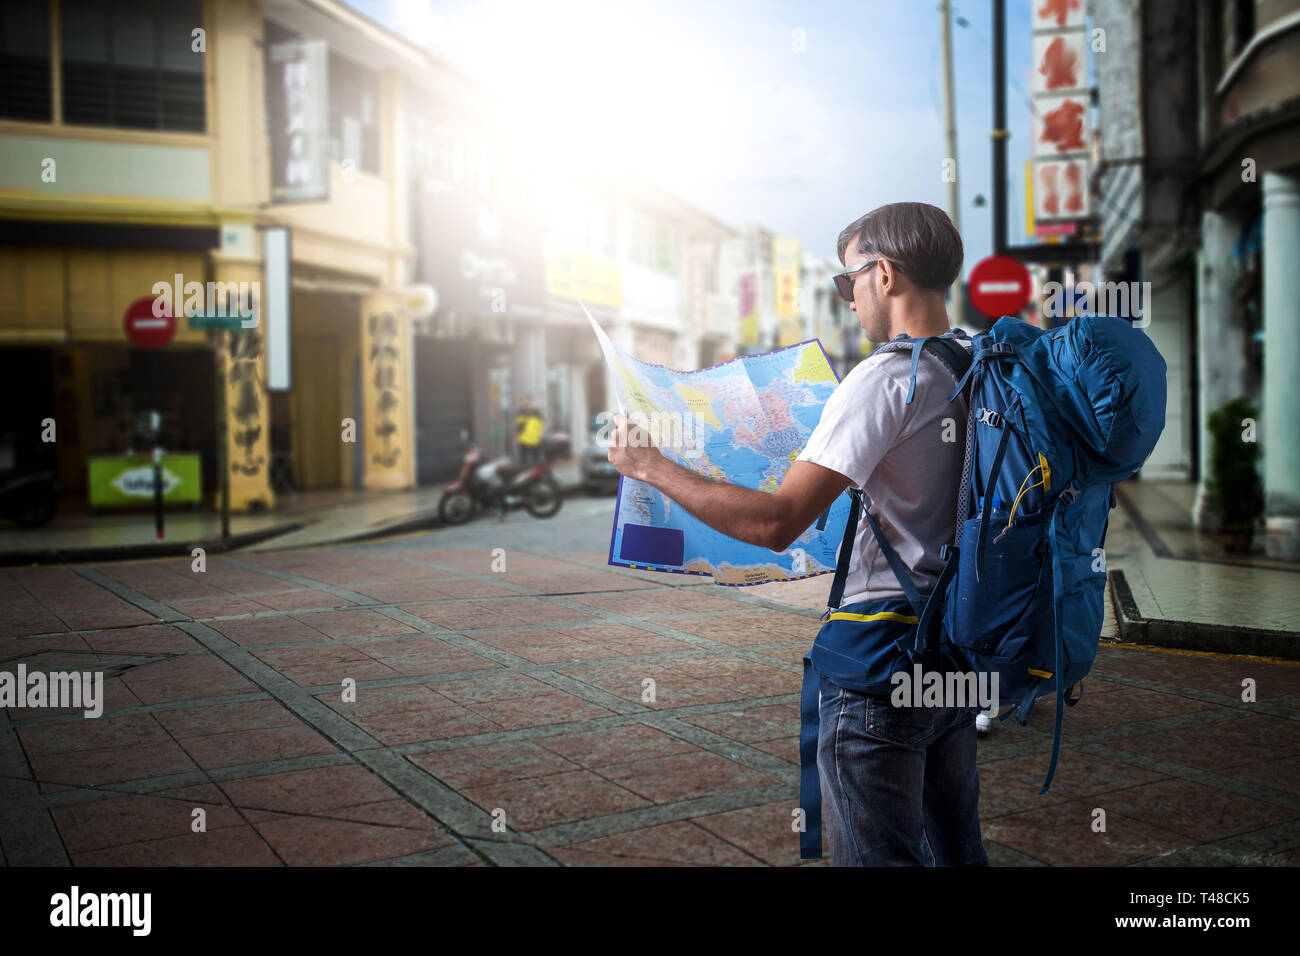 Asia man reading map on street in the city. Stock Photo